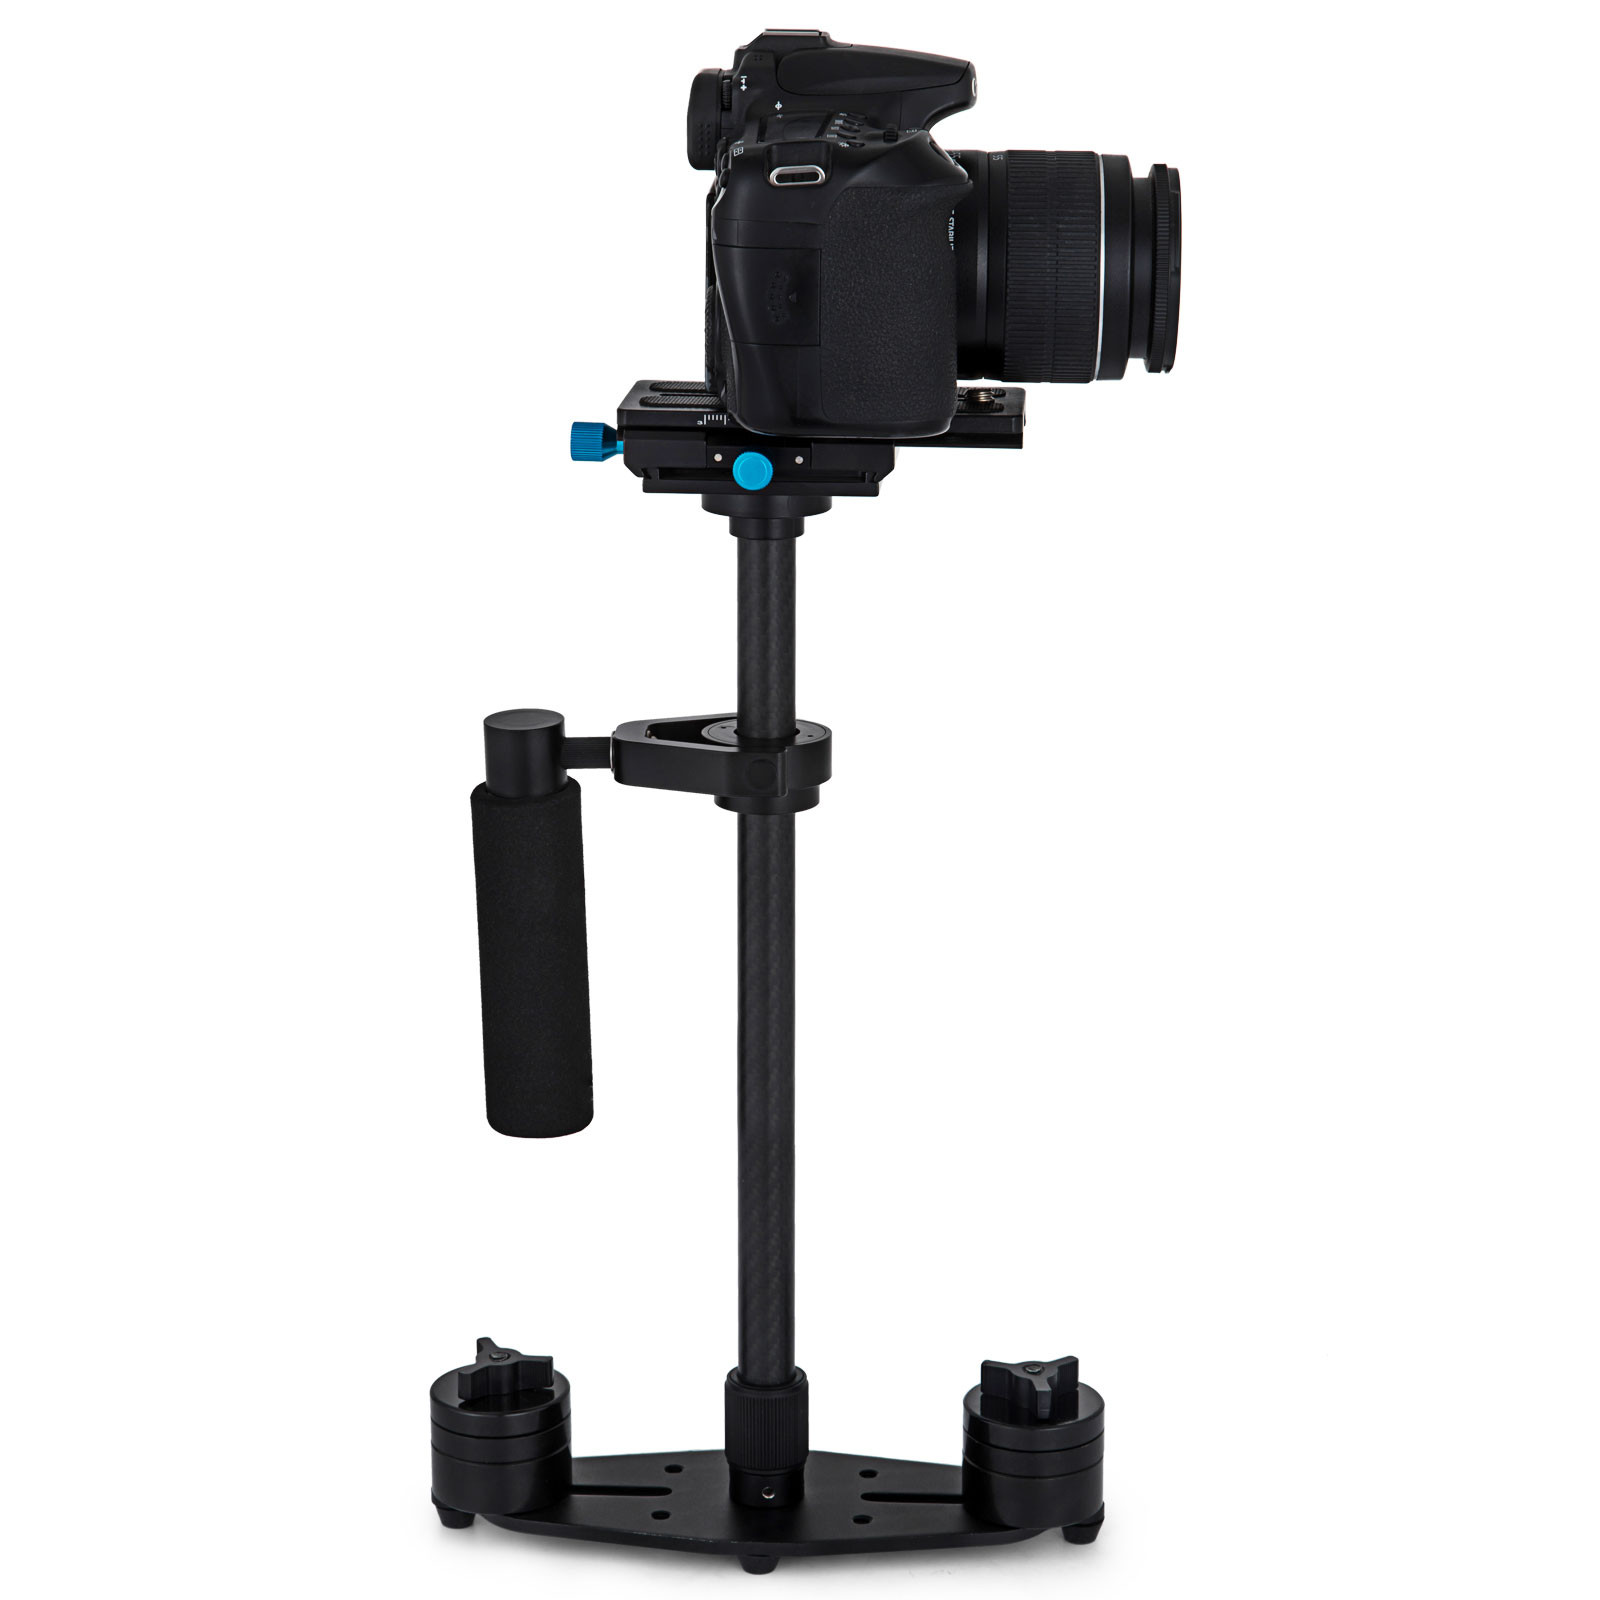 S60T-S60N-Handheld-Steady-Stabilizer-360-For-DSLR-Canon-Camera thumbnail 31